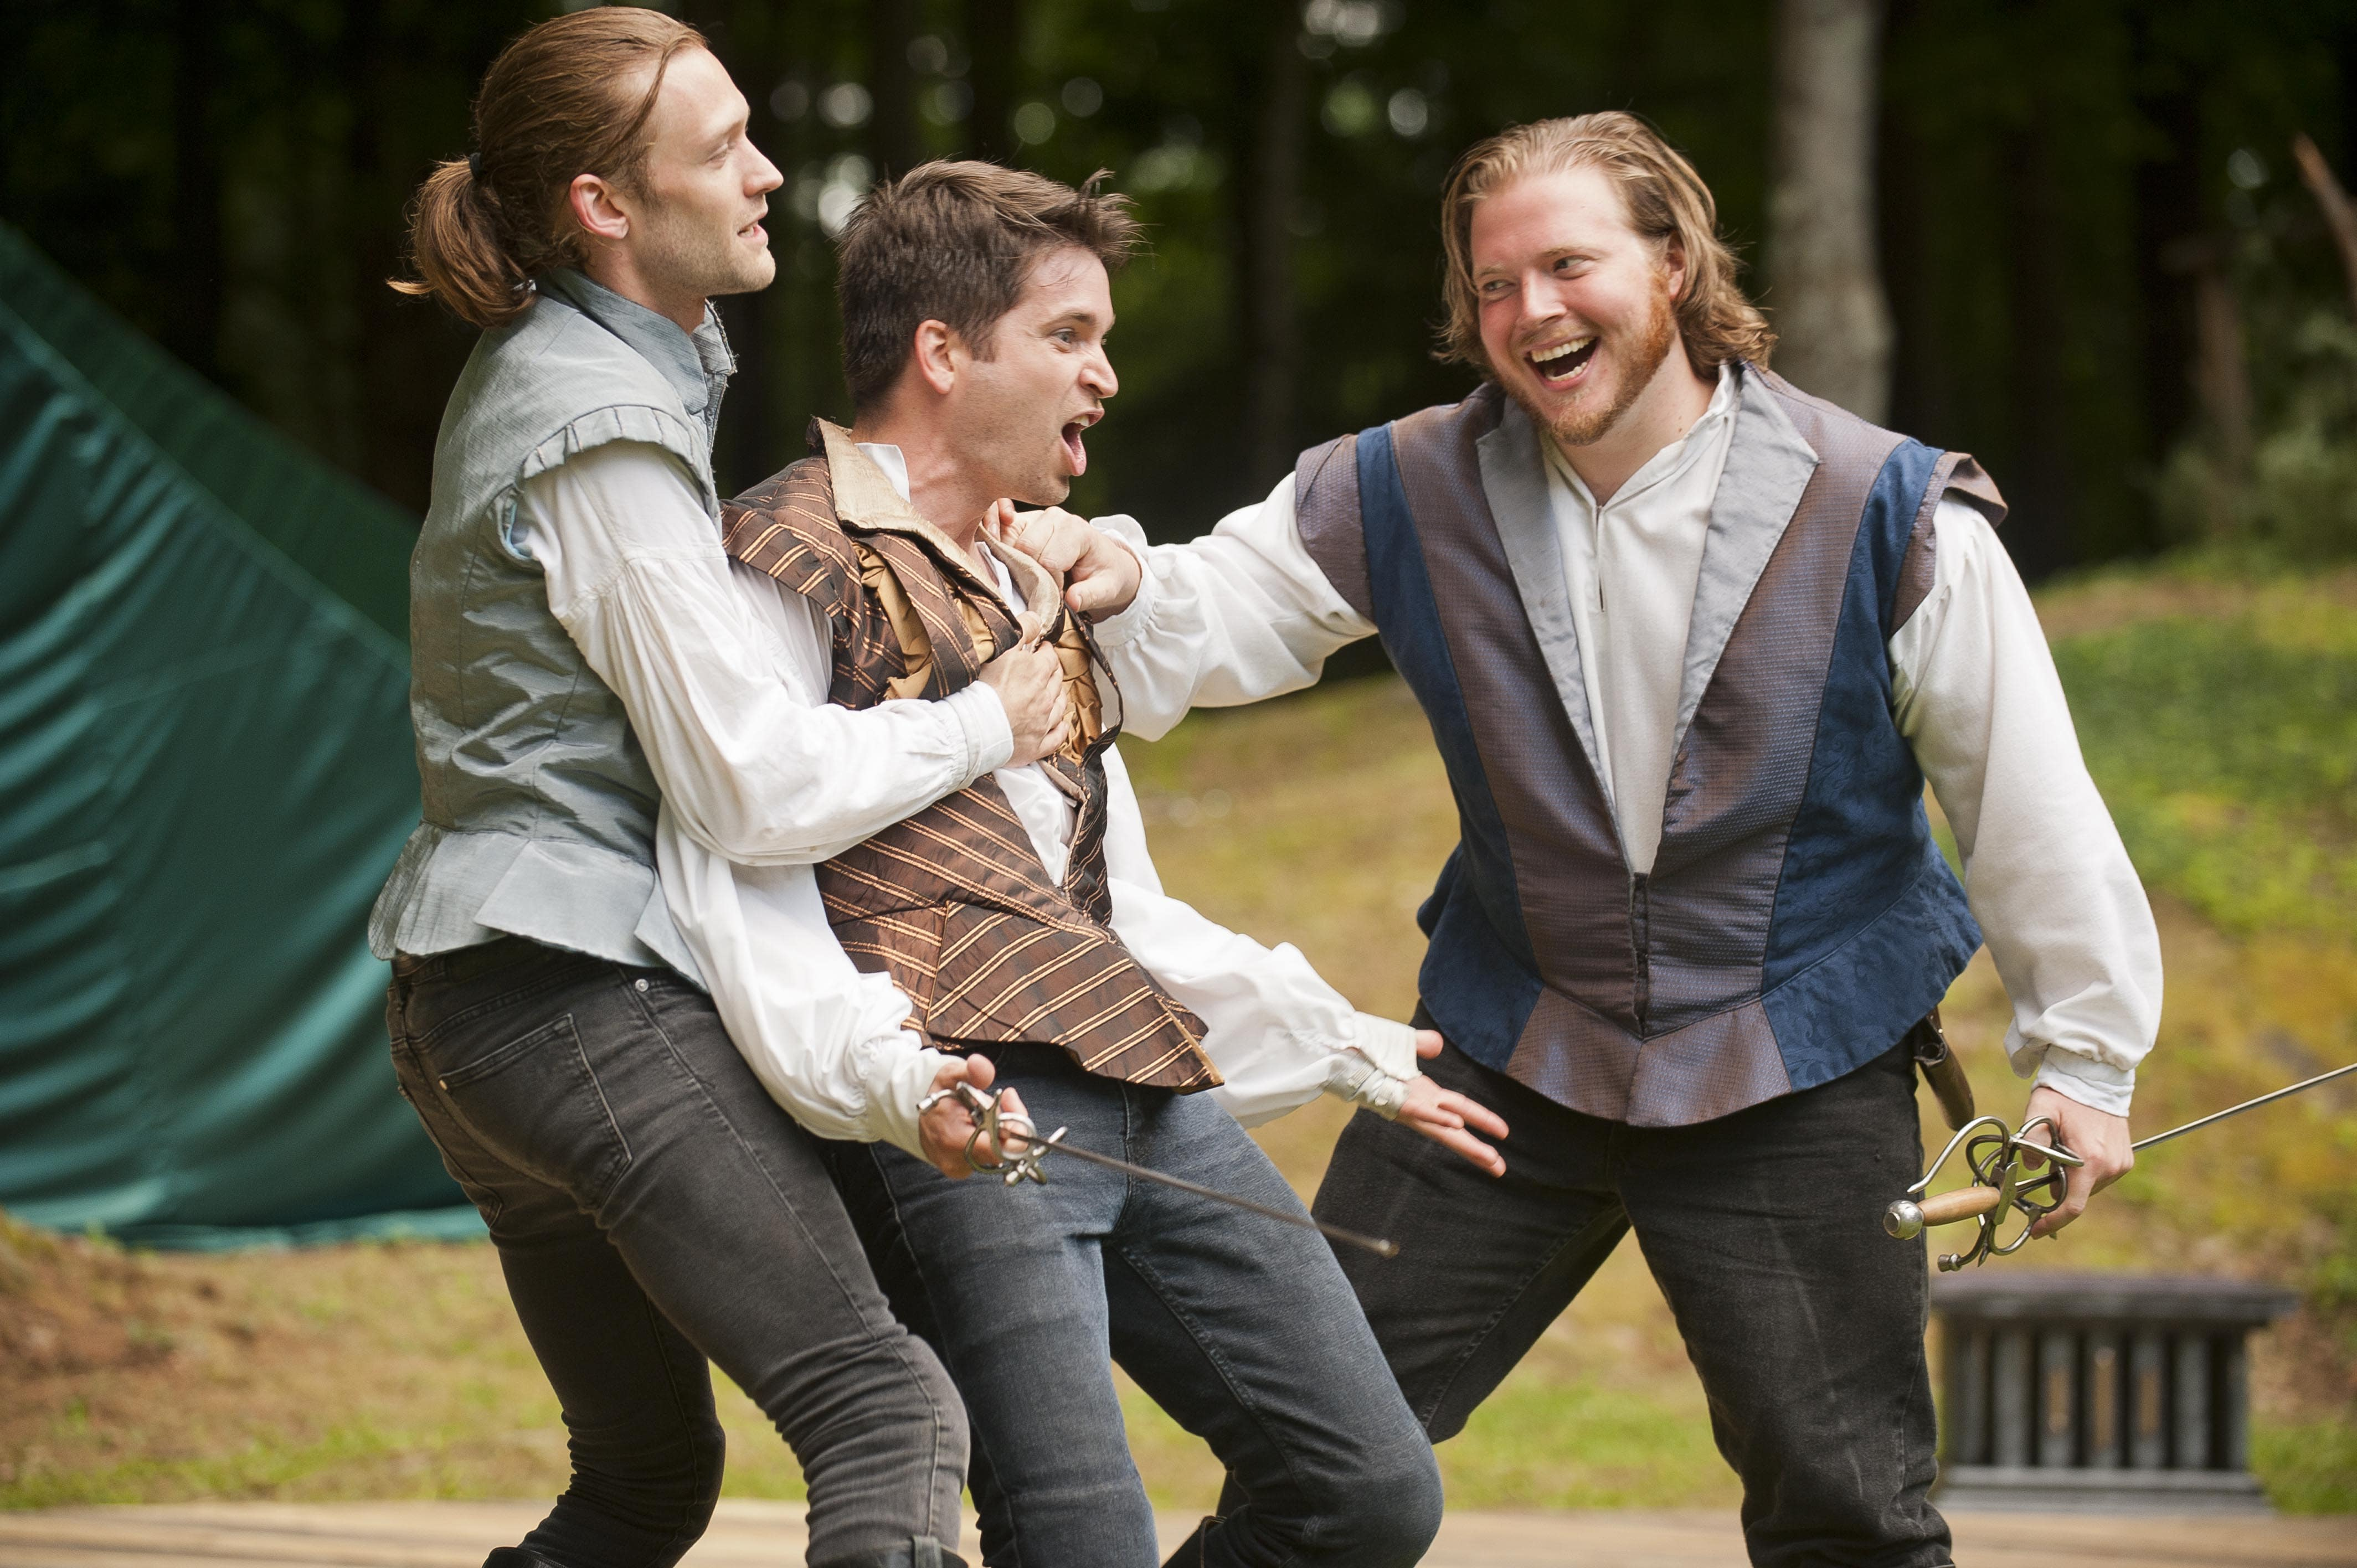 Romeo, Mercutio and Benvolio (Marcus Kearns, Luke Reed, and Conor Moroney). Photo by Kevin Sprague